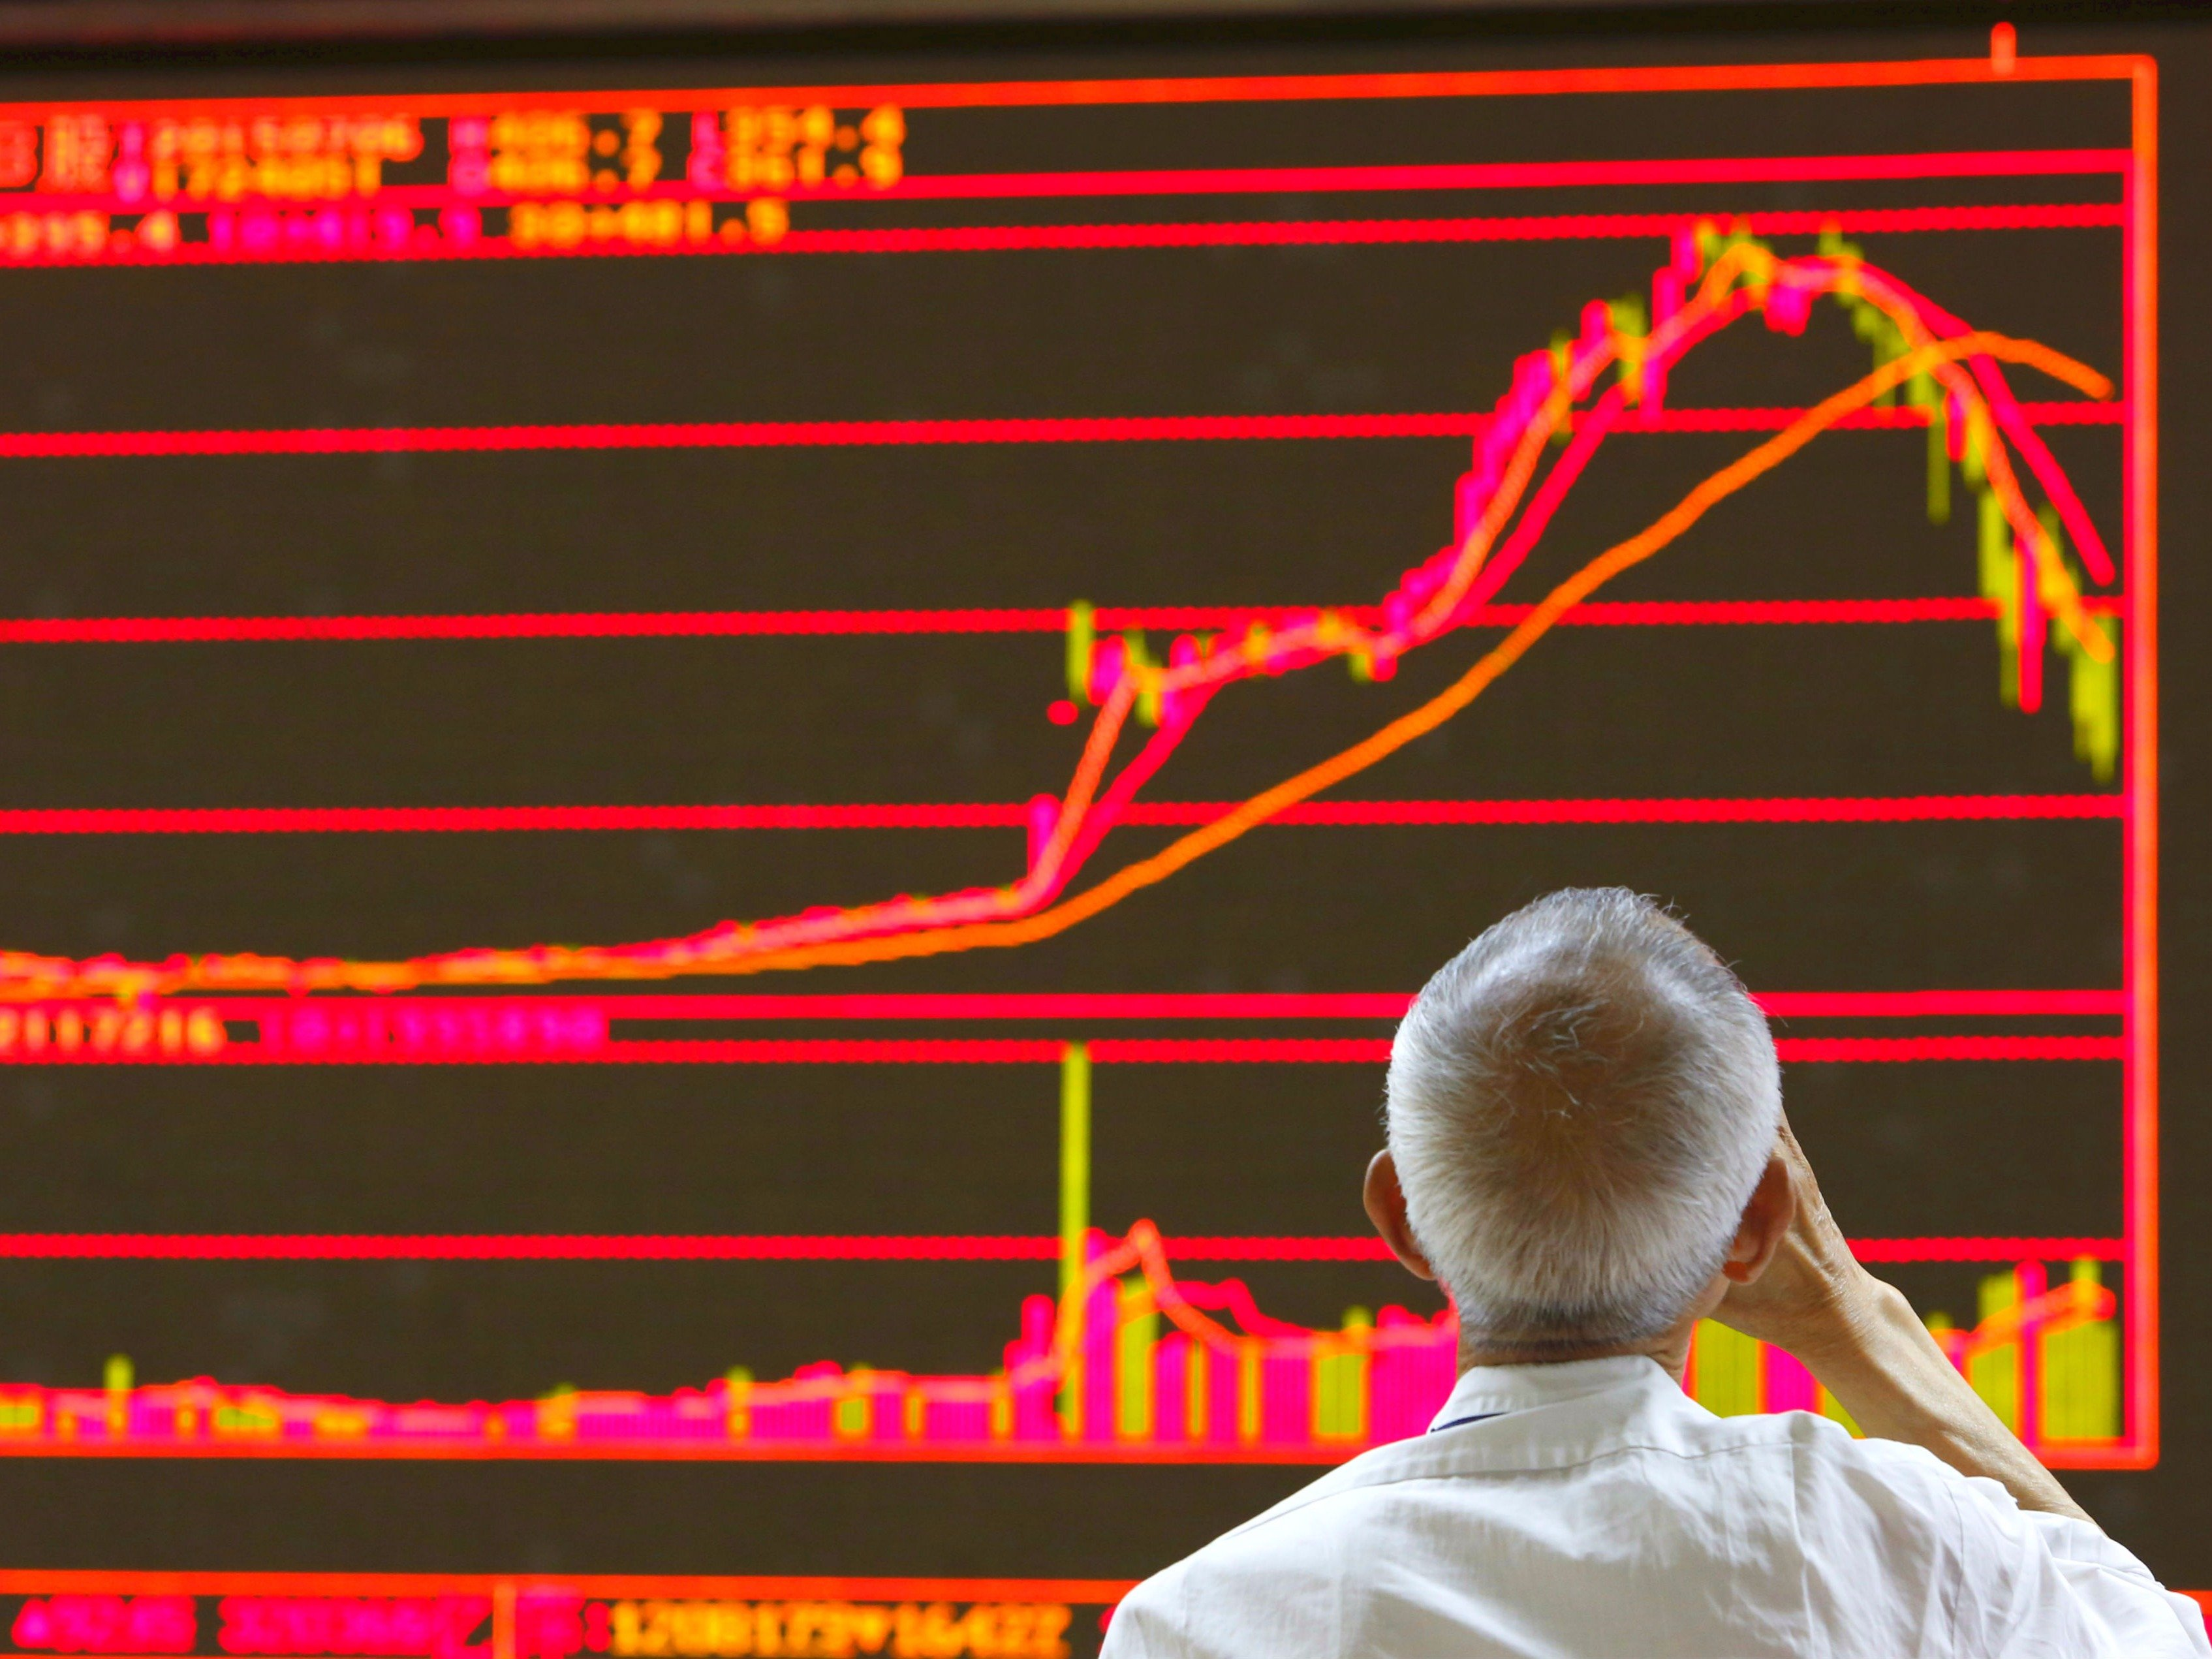 the effects of the 2015 stock market crash in china on its economy We examine china's stock market collapse and explore whether its markets are divorced from the real economy 30 aug 2015 10:58 gmt business & economy, asia pacific, china.